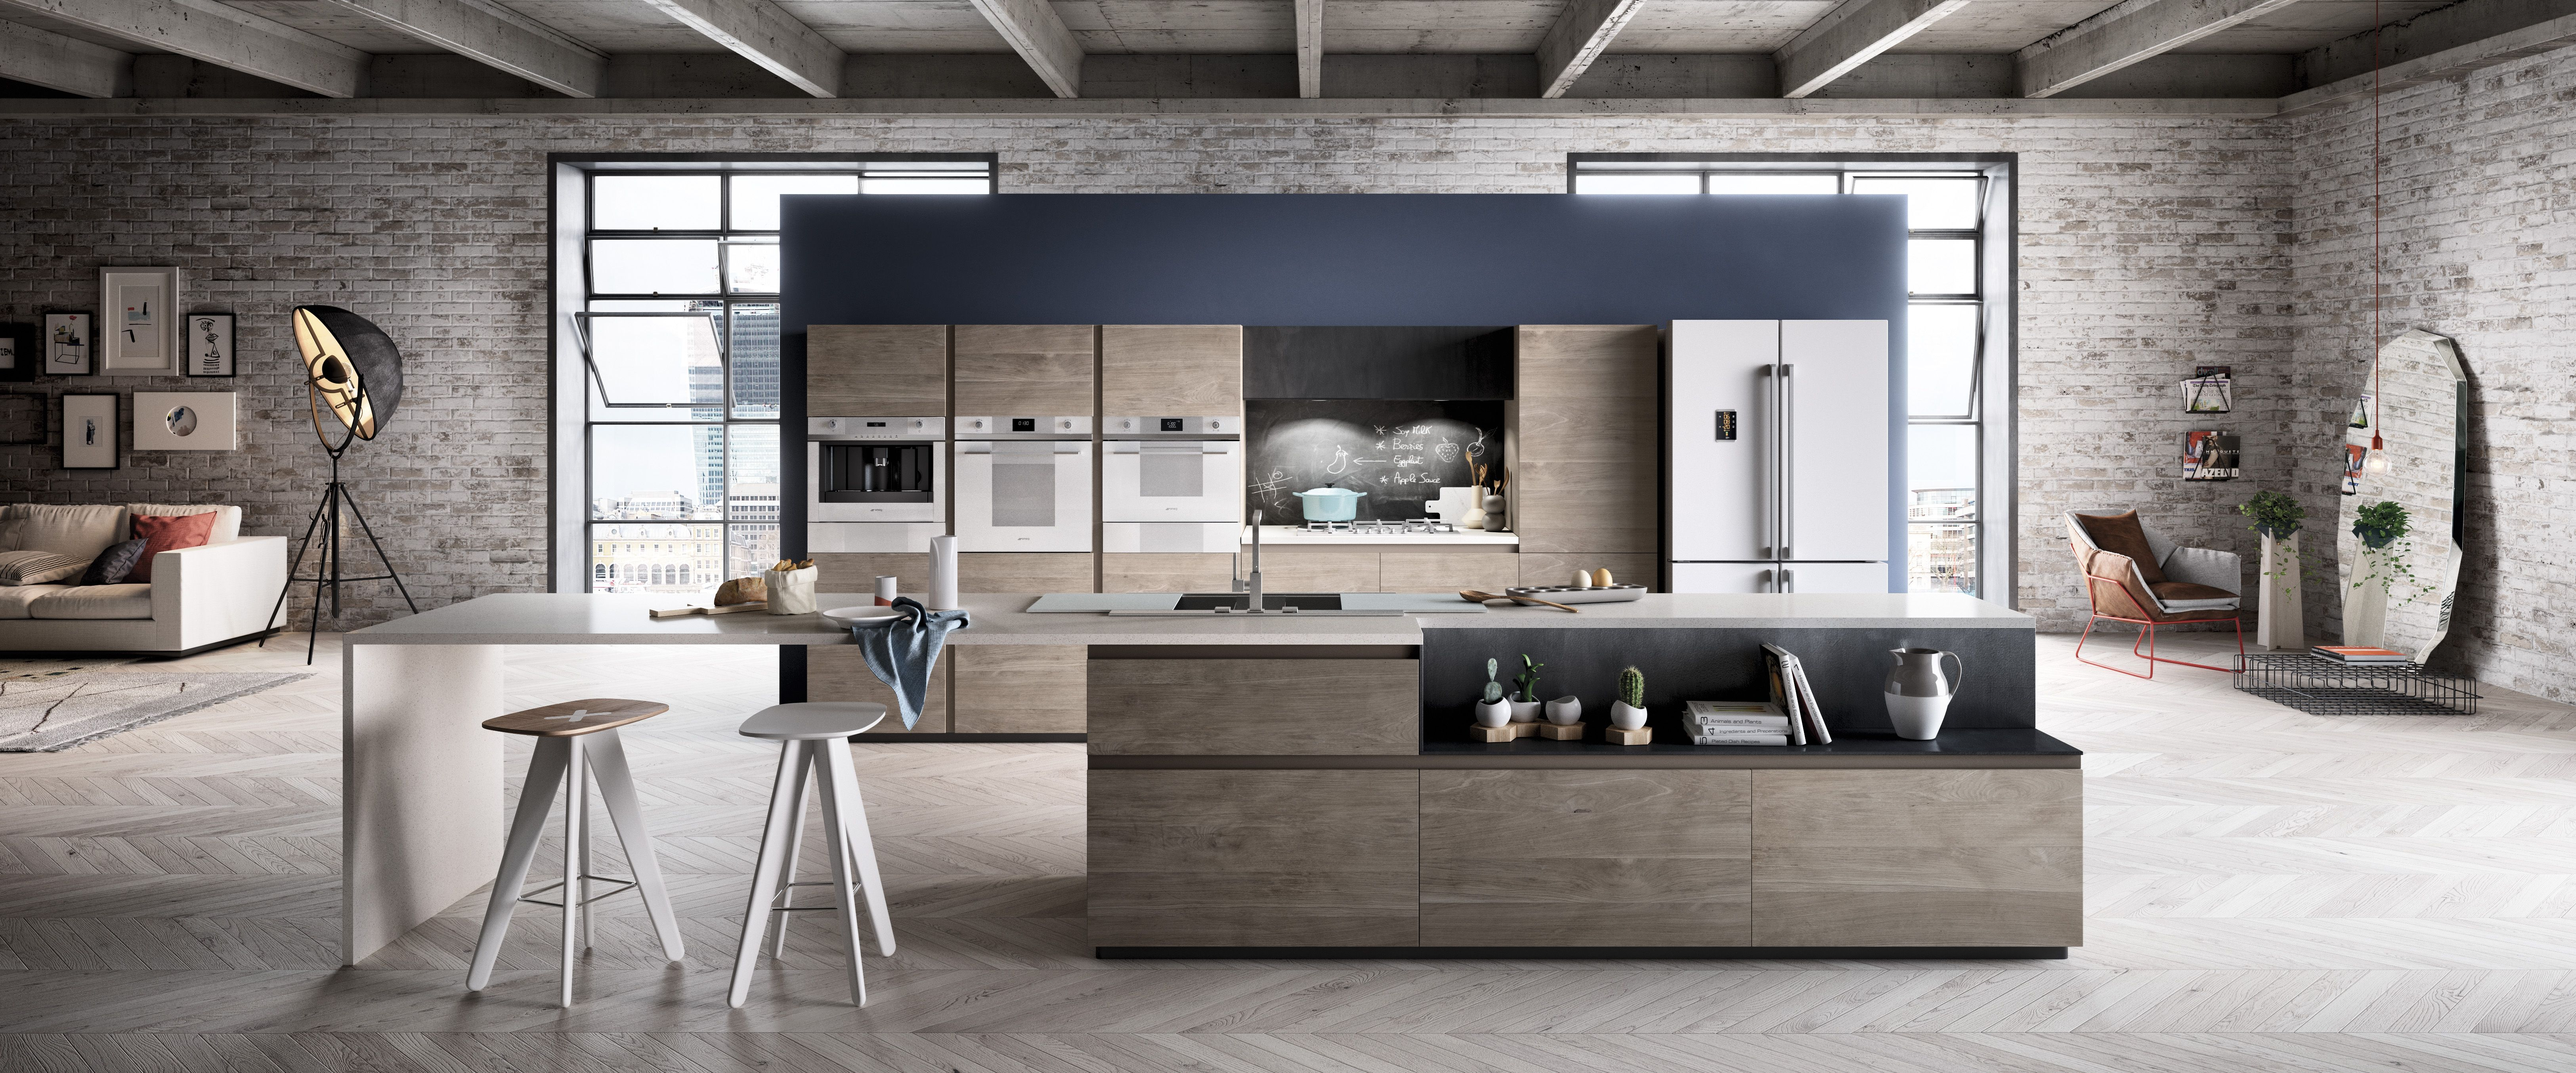 Smeg Linea range  More Than You Thought Pinterest Ranges and